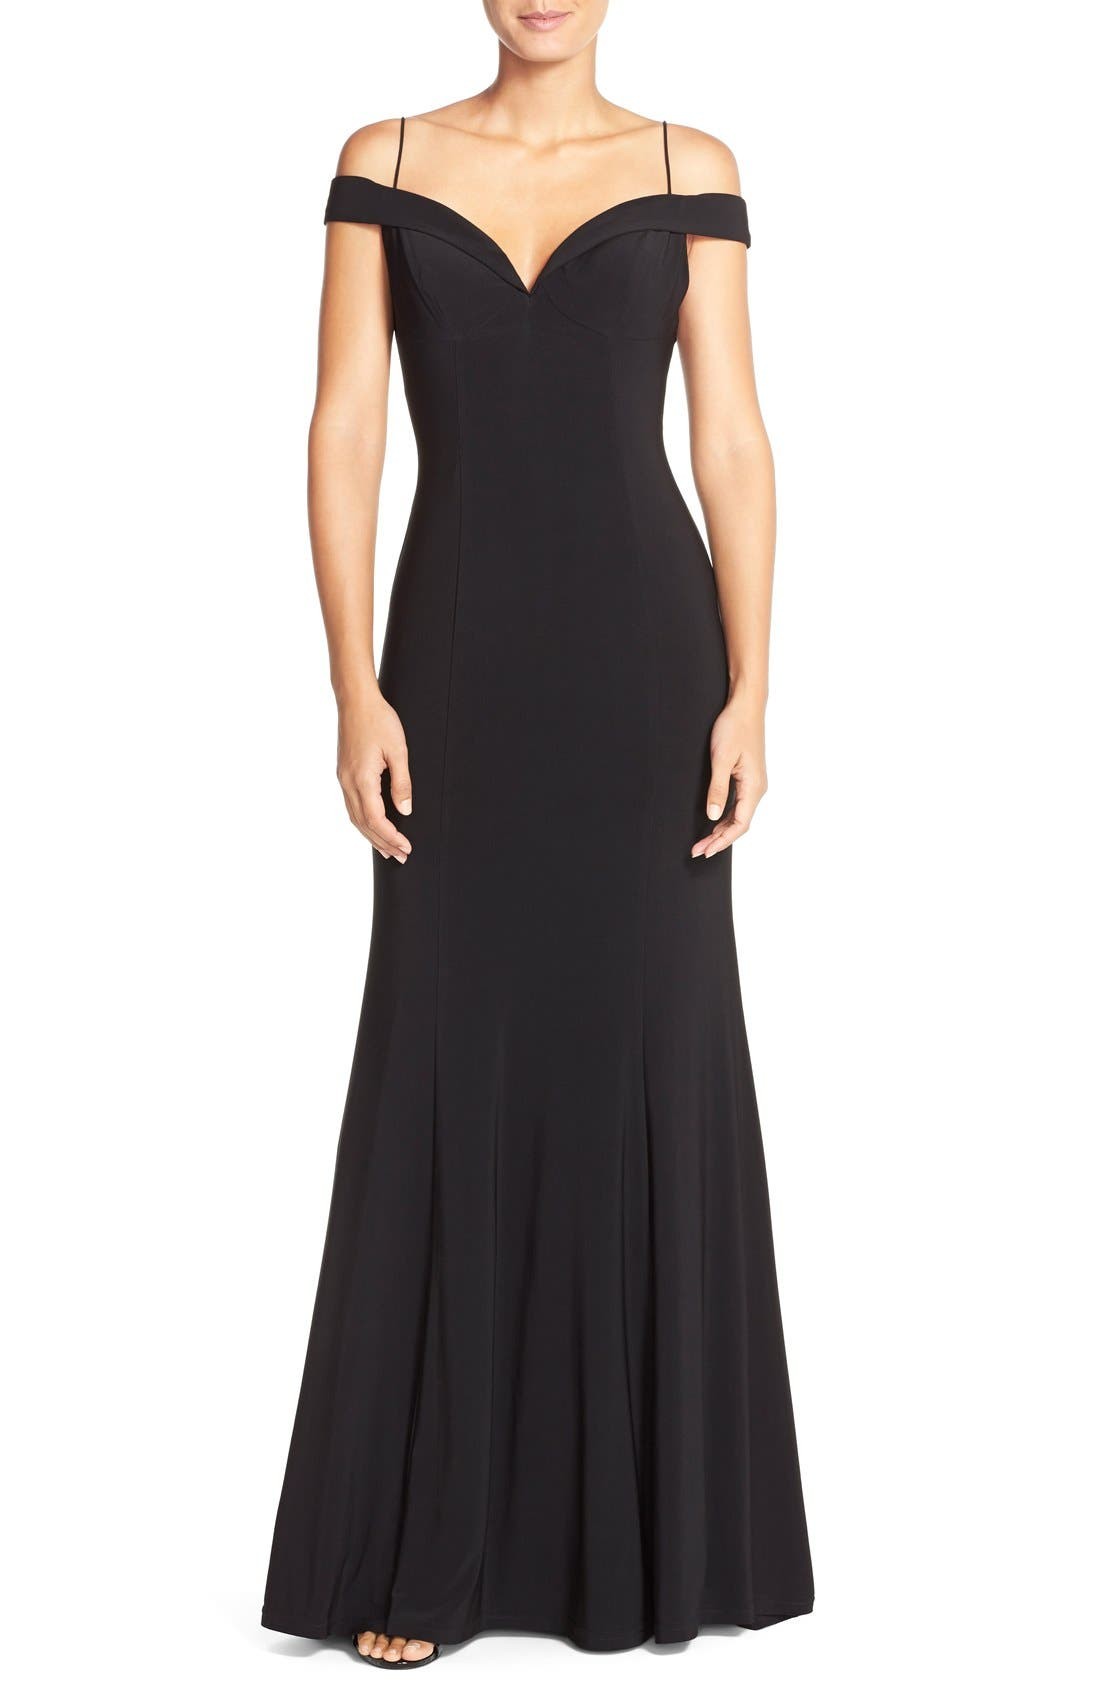 Main Image - Adrianna PapellOff the Shoulder Jersey Mermaid Gown